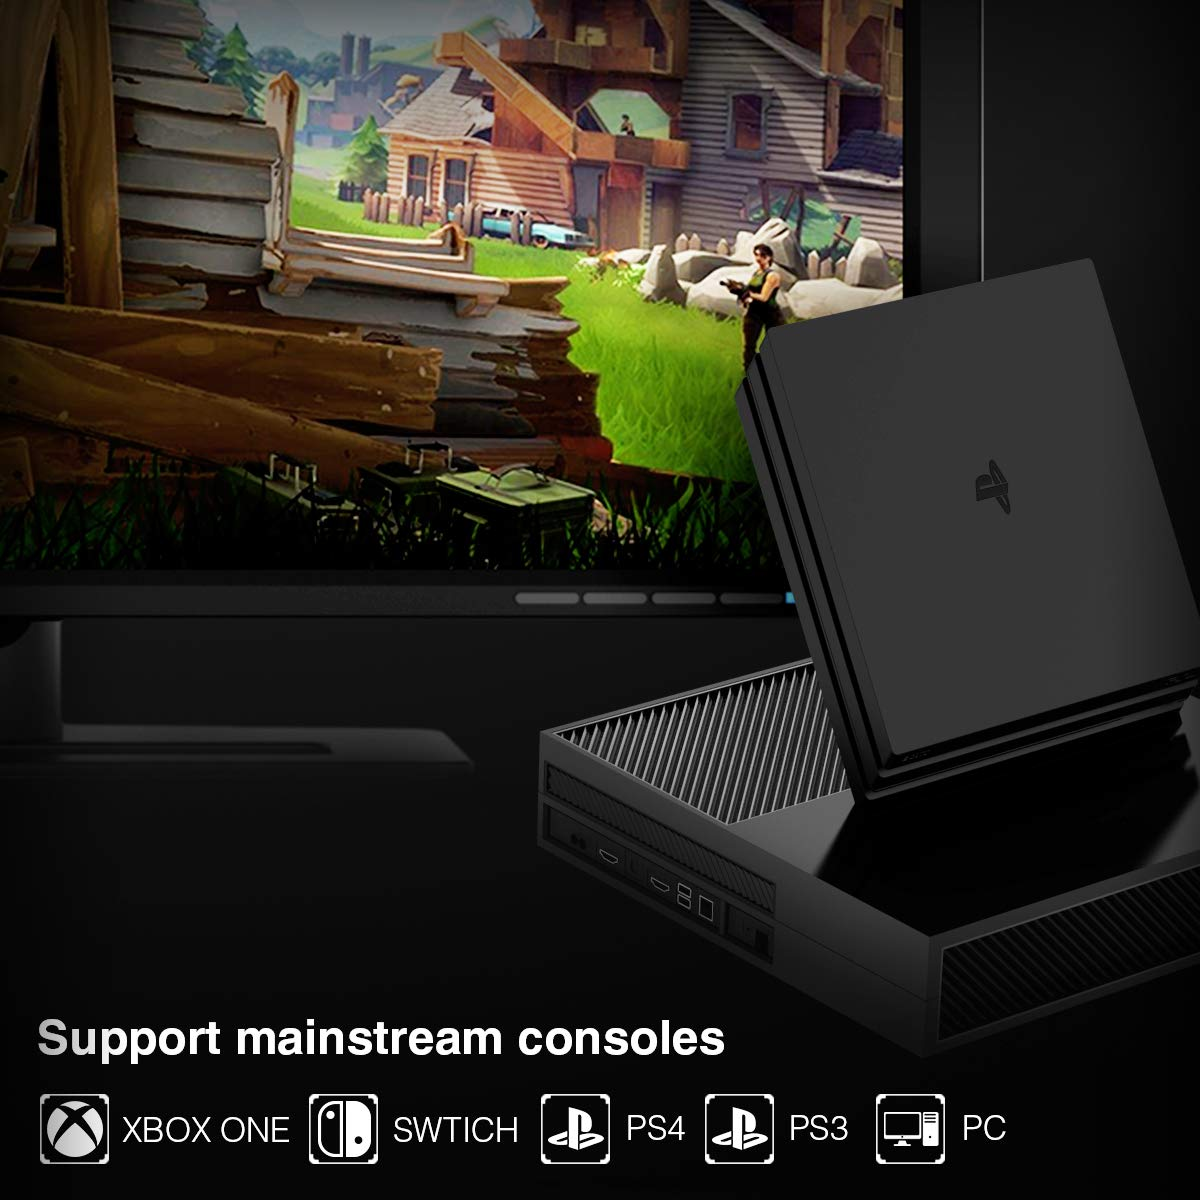 27c1c933794 One Combo for All Consoles: GameSir VX AimSwitch supports mainstream  consoles: Xbox One, PlayStation 4, PlayStation 3, Switch and PC.